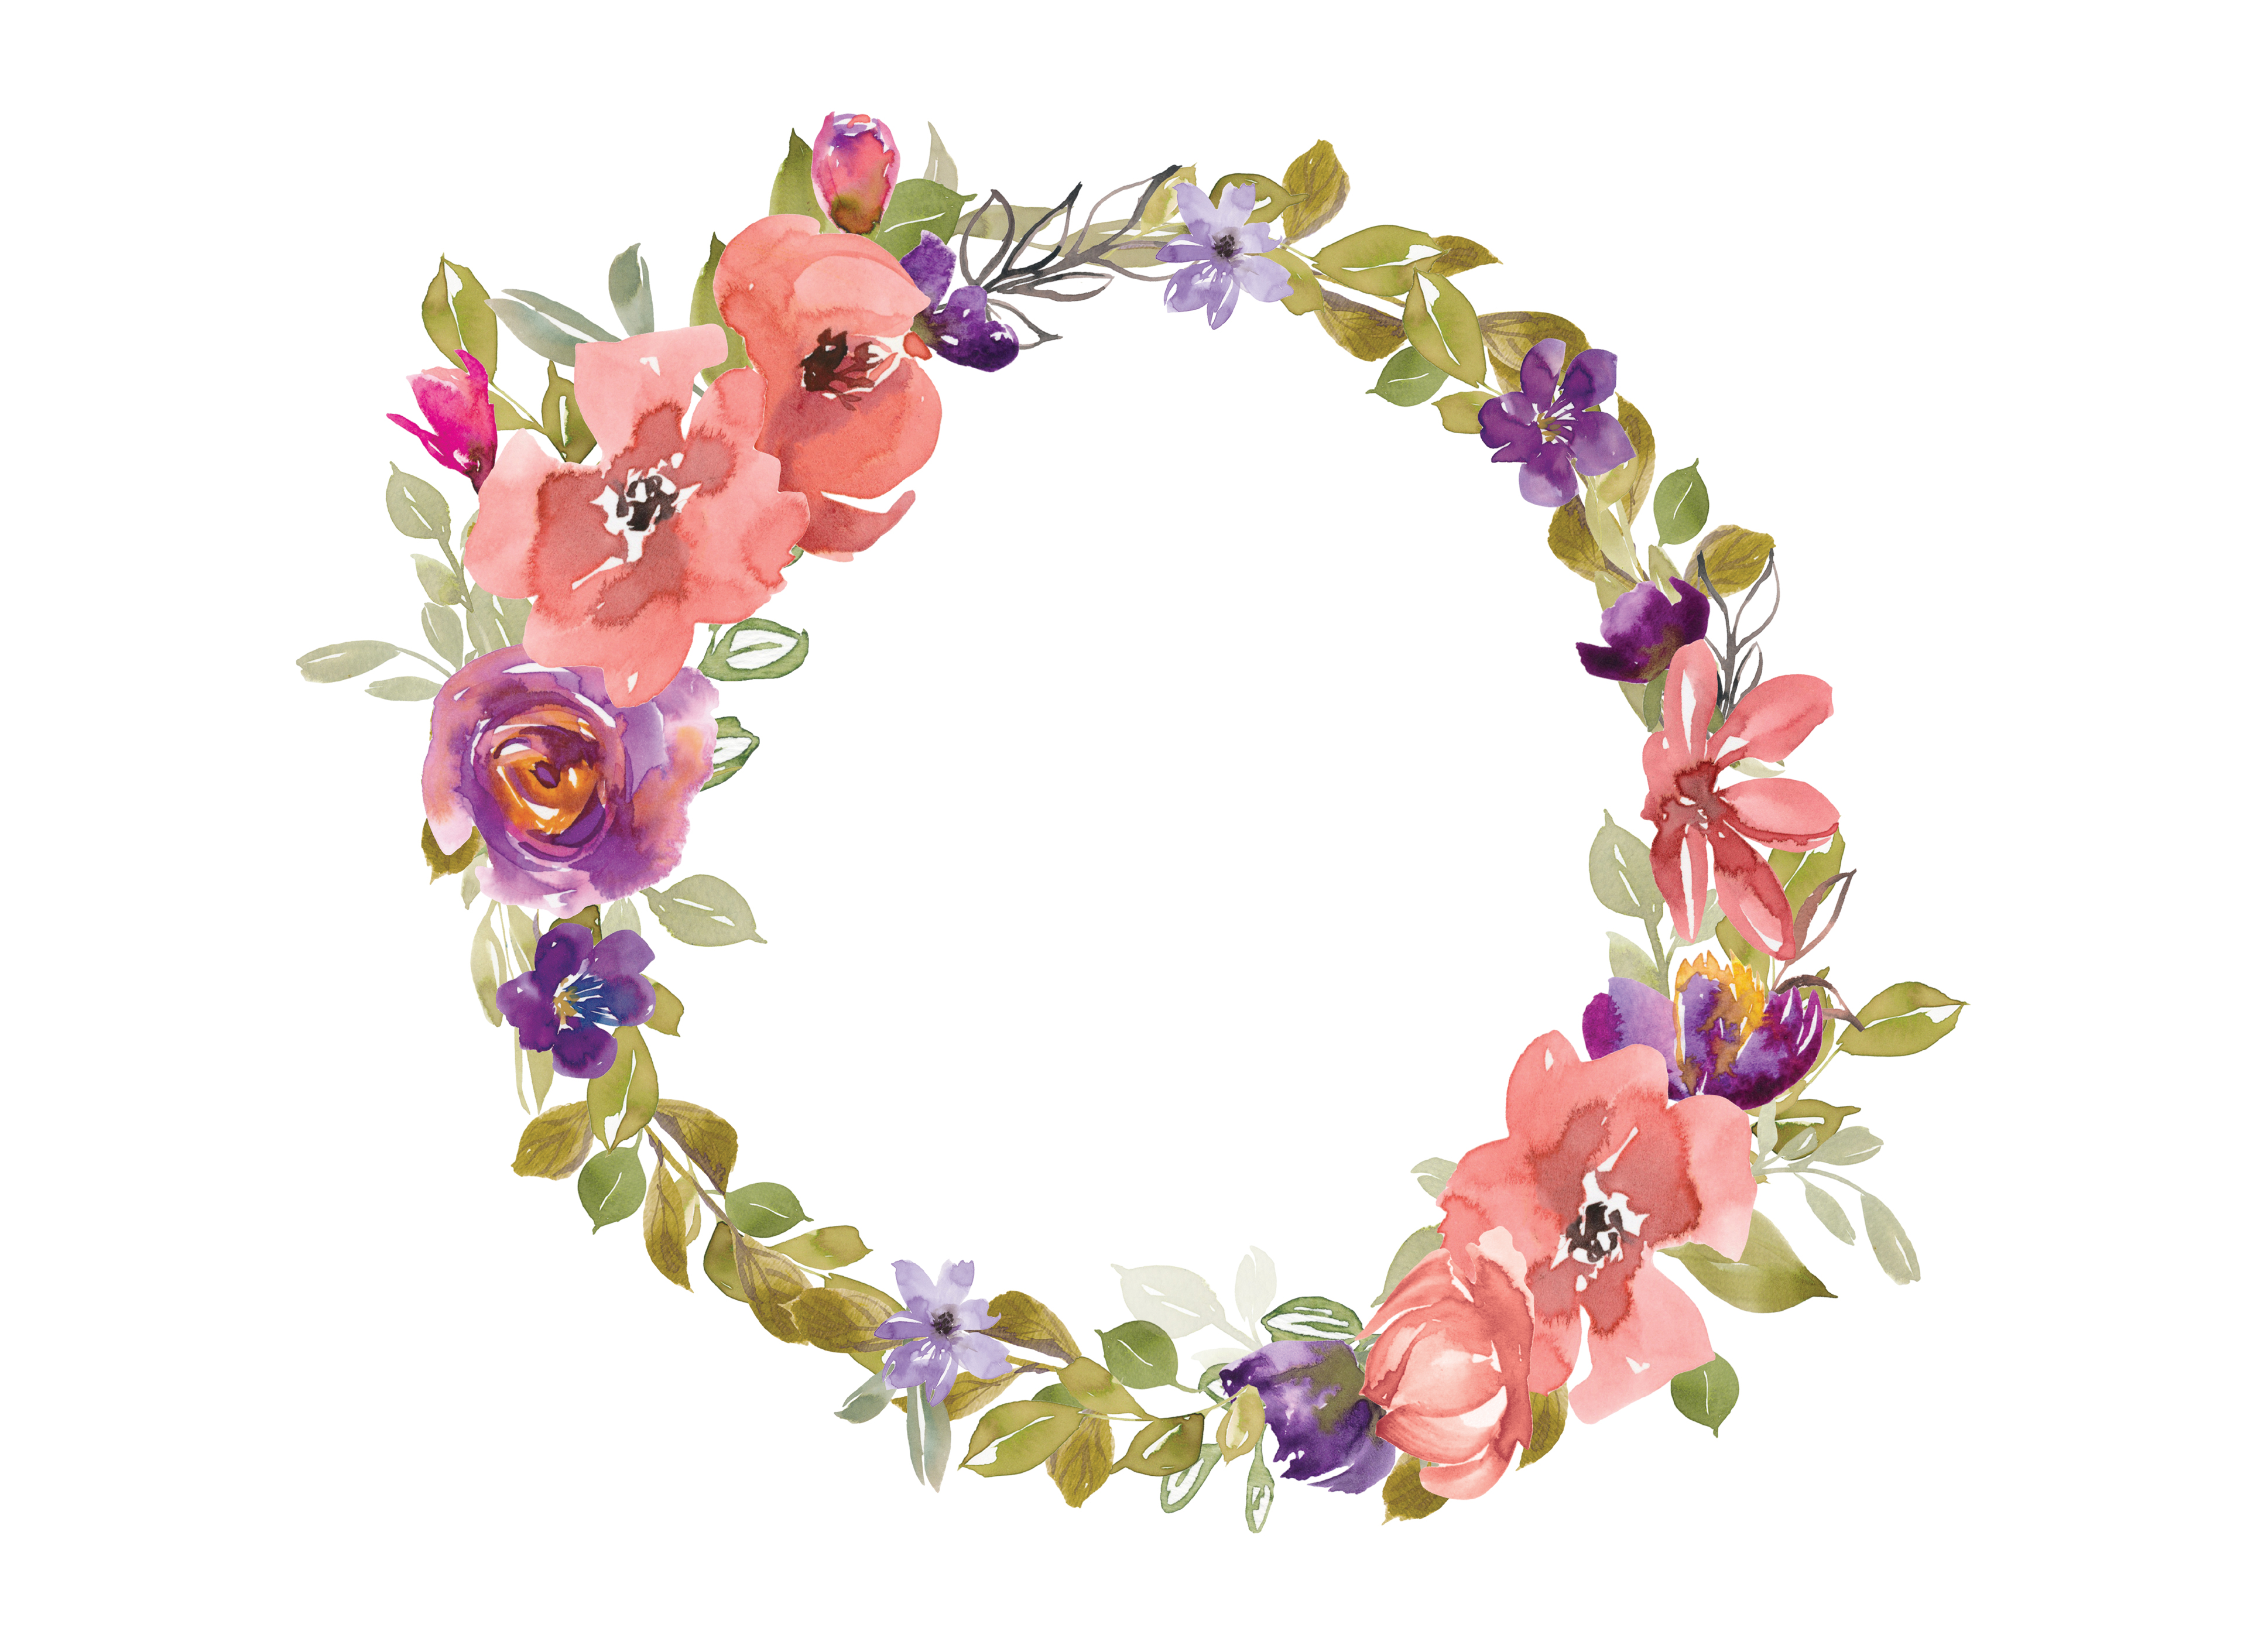 Rose wreath clipart svg library stock Watercolor Salmon and Purple Flowers Wreath svg library stock